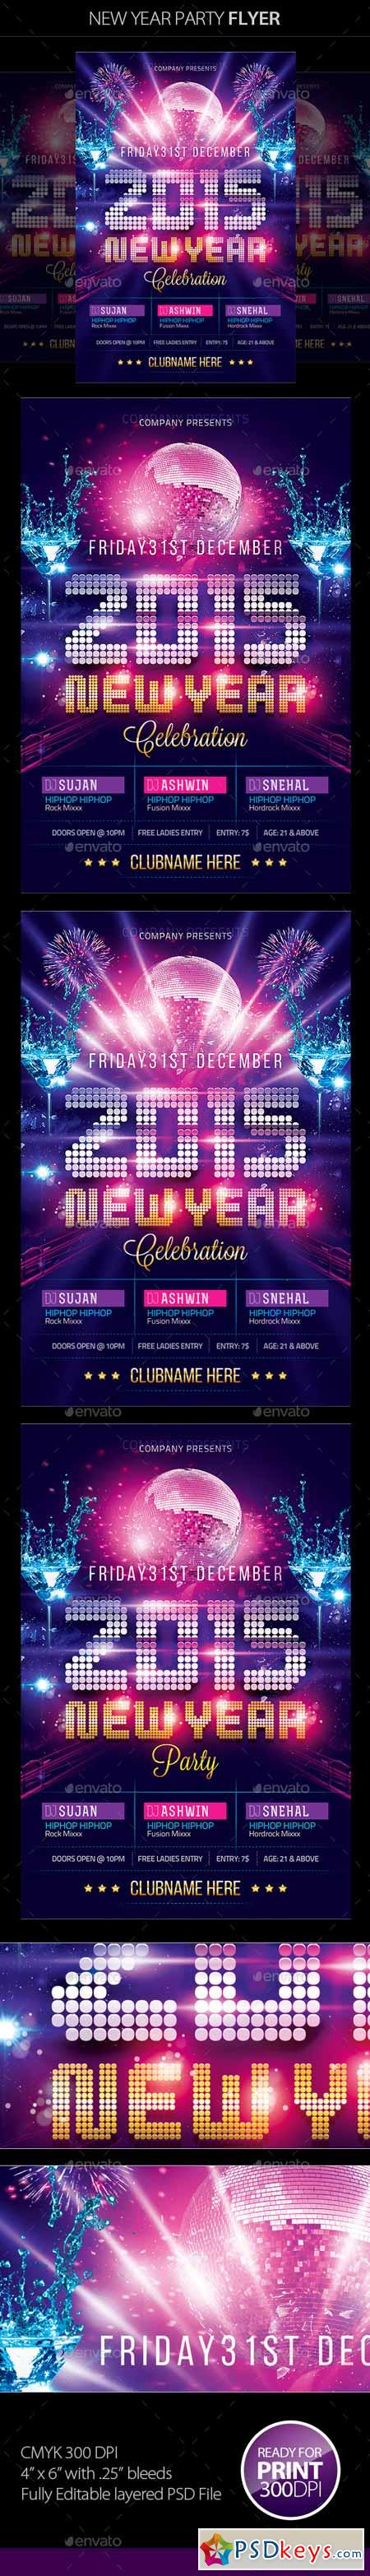 New Year Party Flyer 9522866